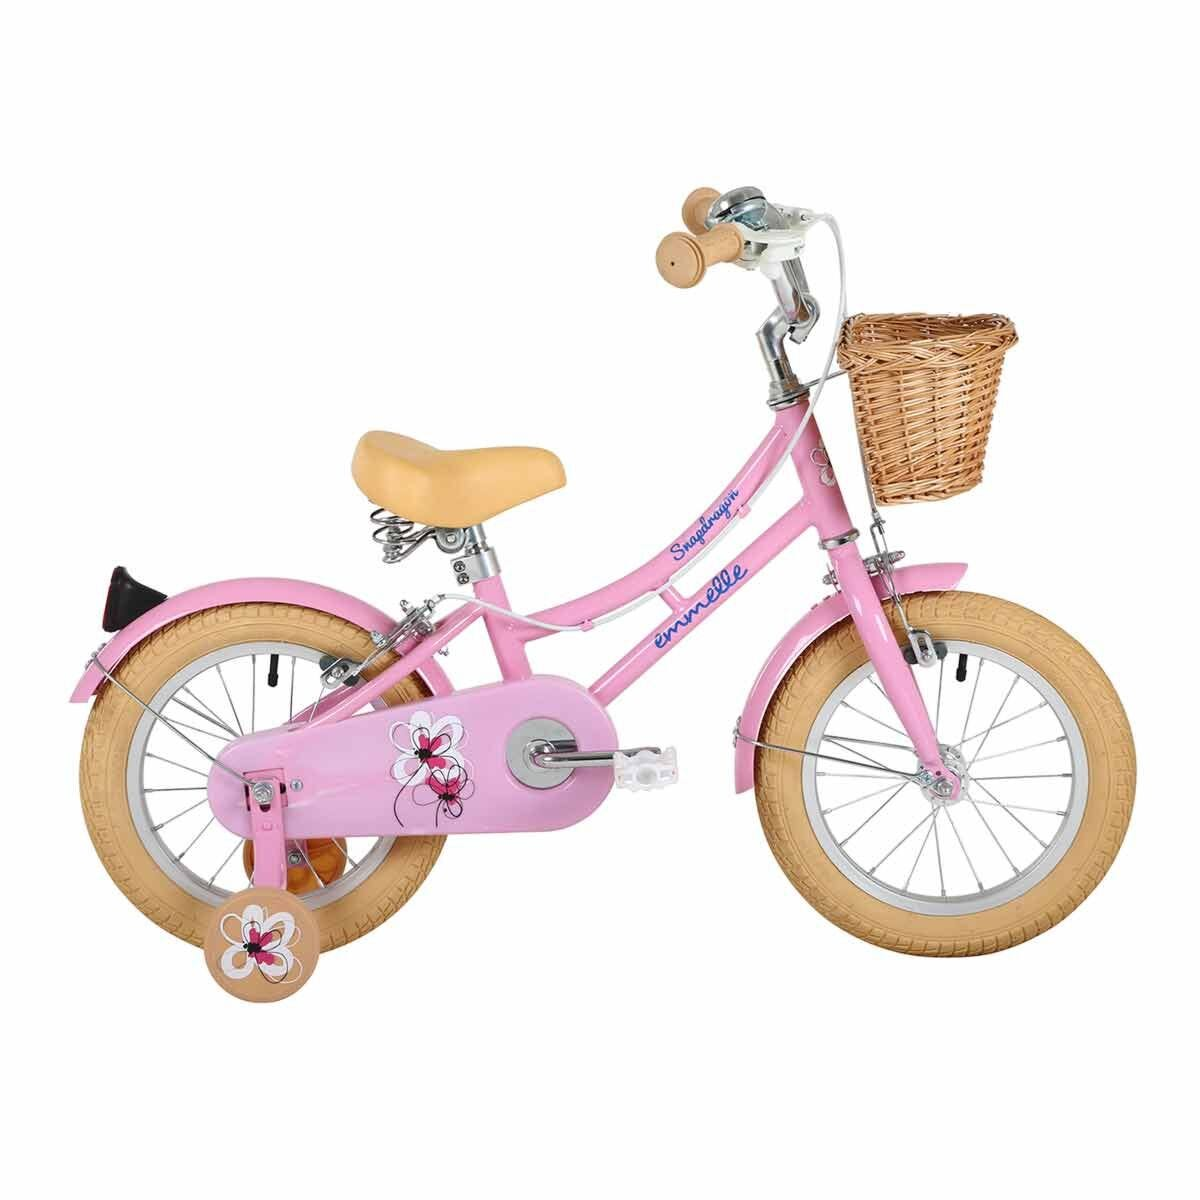 Emmelle Snapdragon Girls Bike 14 Inch Wheel